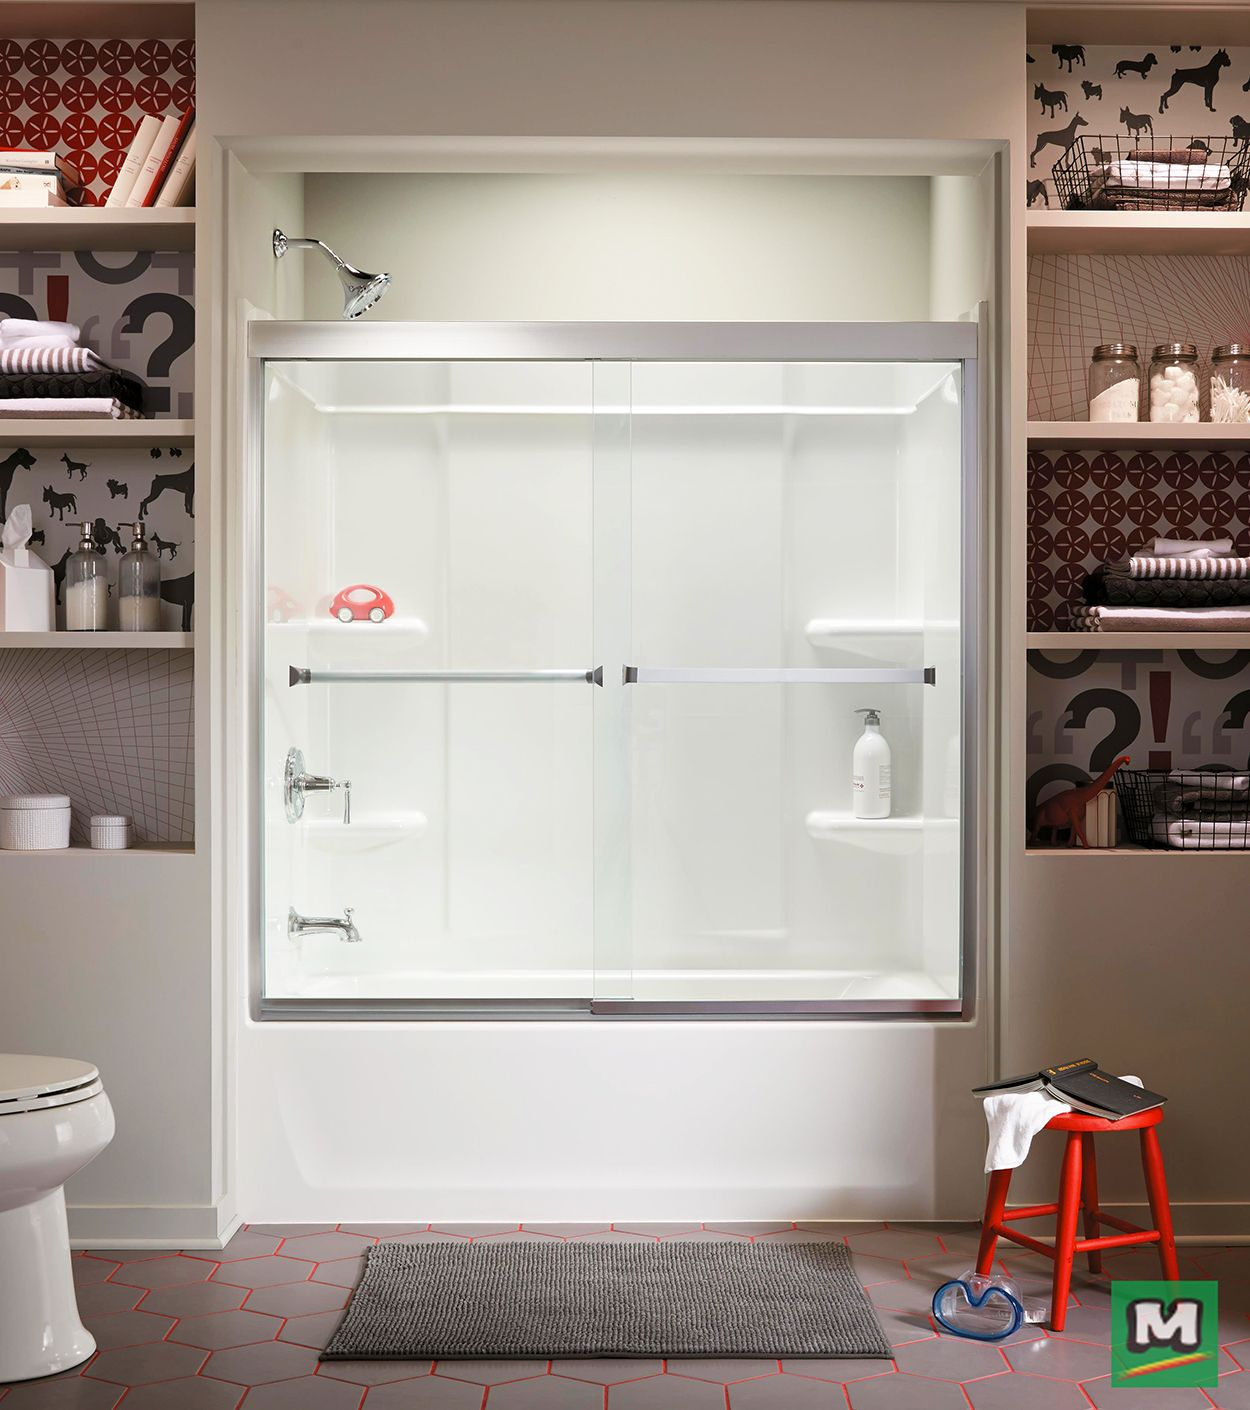 Give Your Shower An Upgrade With This Sterling Meritor Frameless Sliding Bath Door In Silver With Clear Glass Mad Tub Shower Doors Shower Tub Bath Or Shower